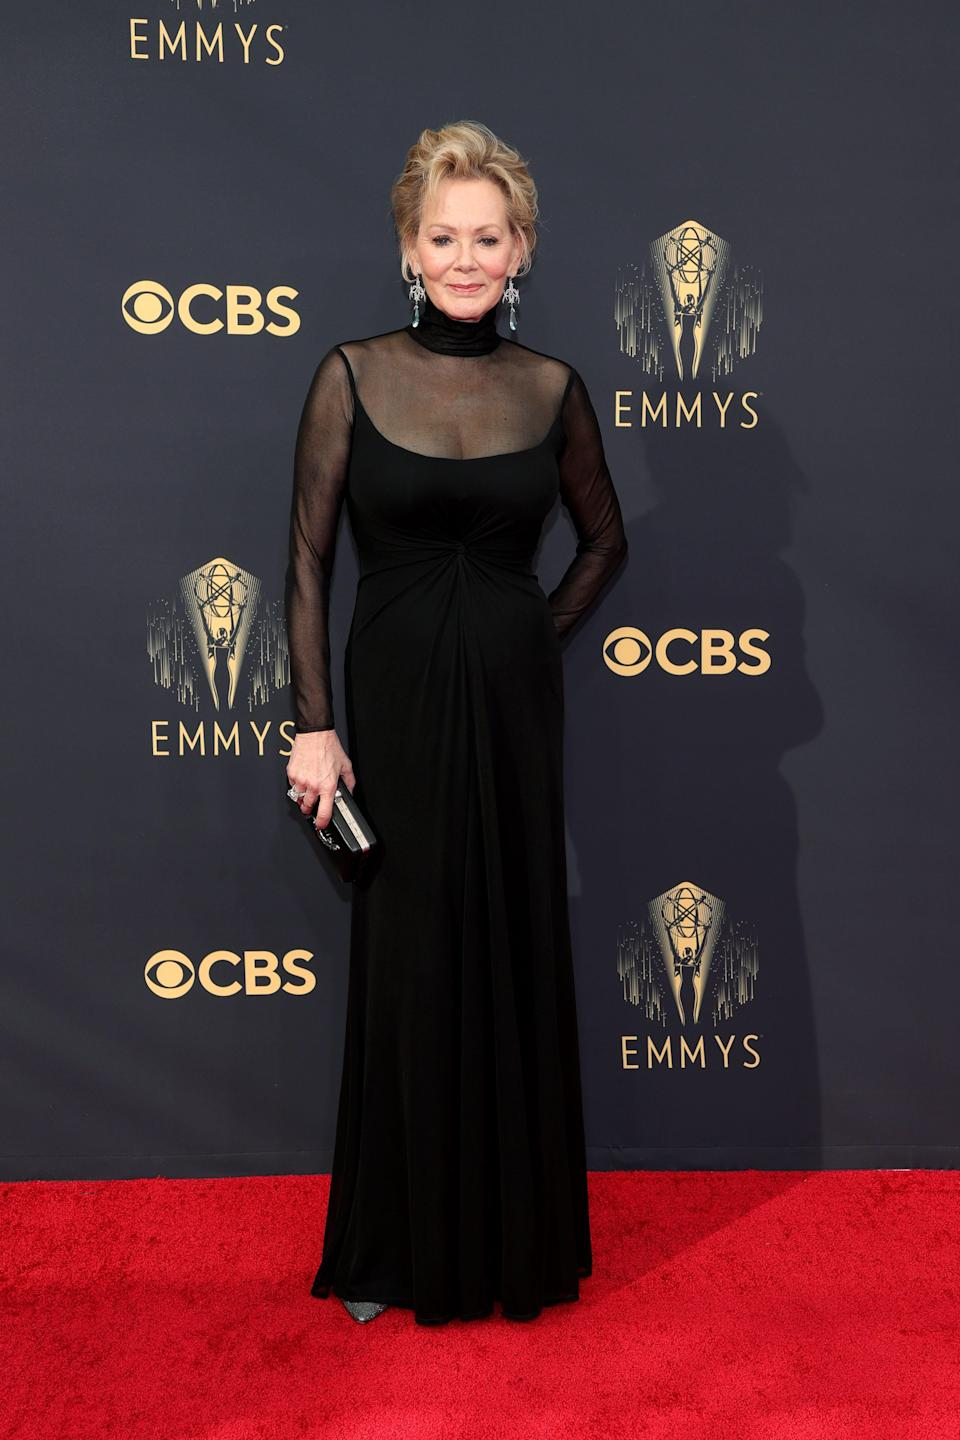 Jean Smart attends the 2021 Emmys.